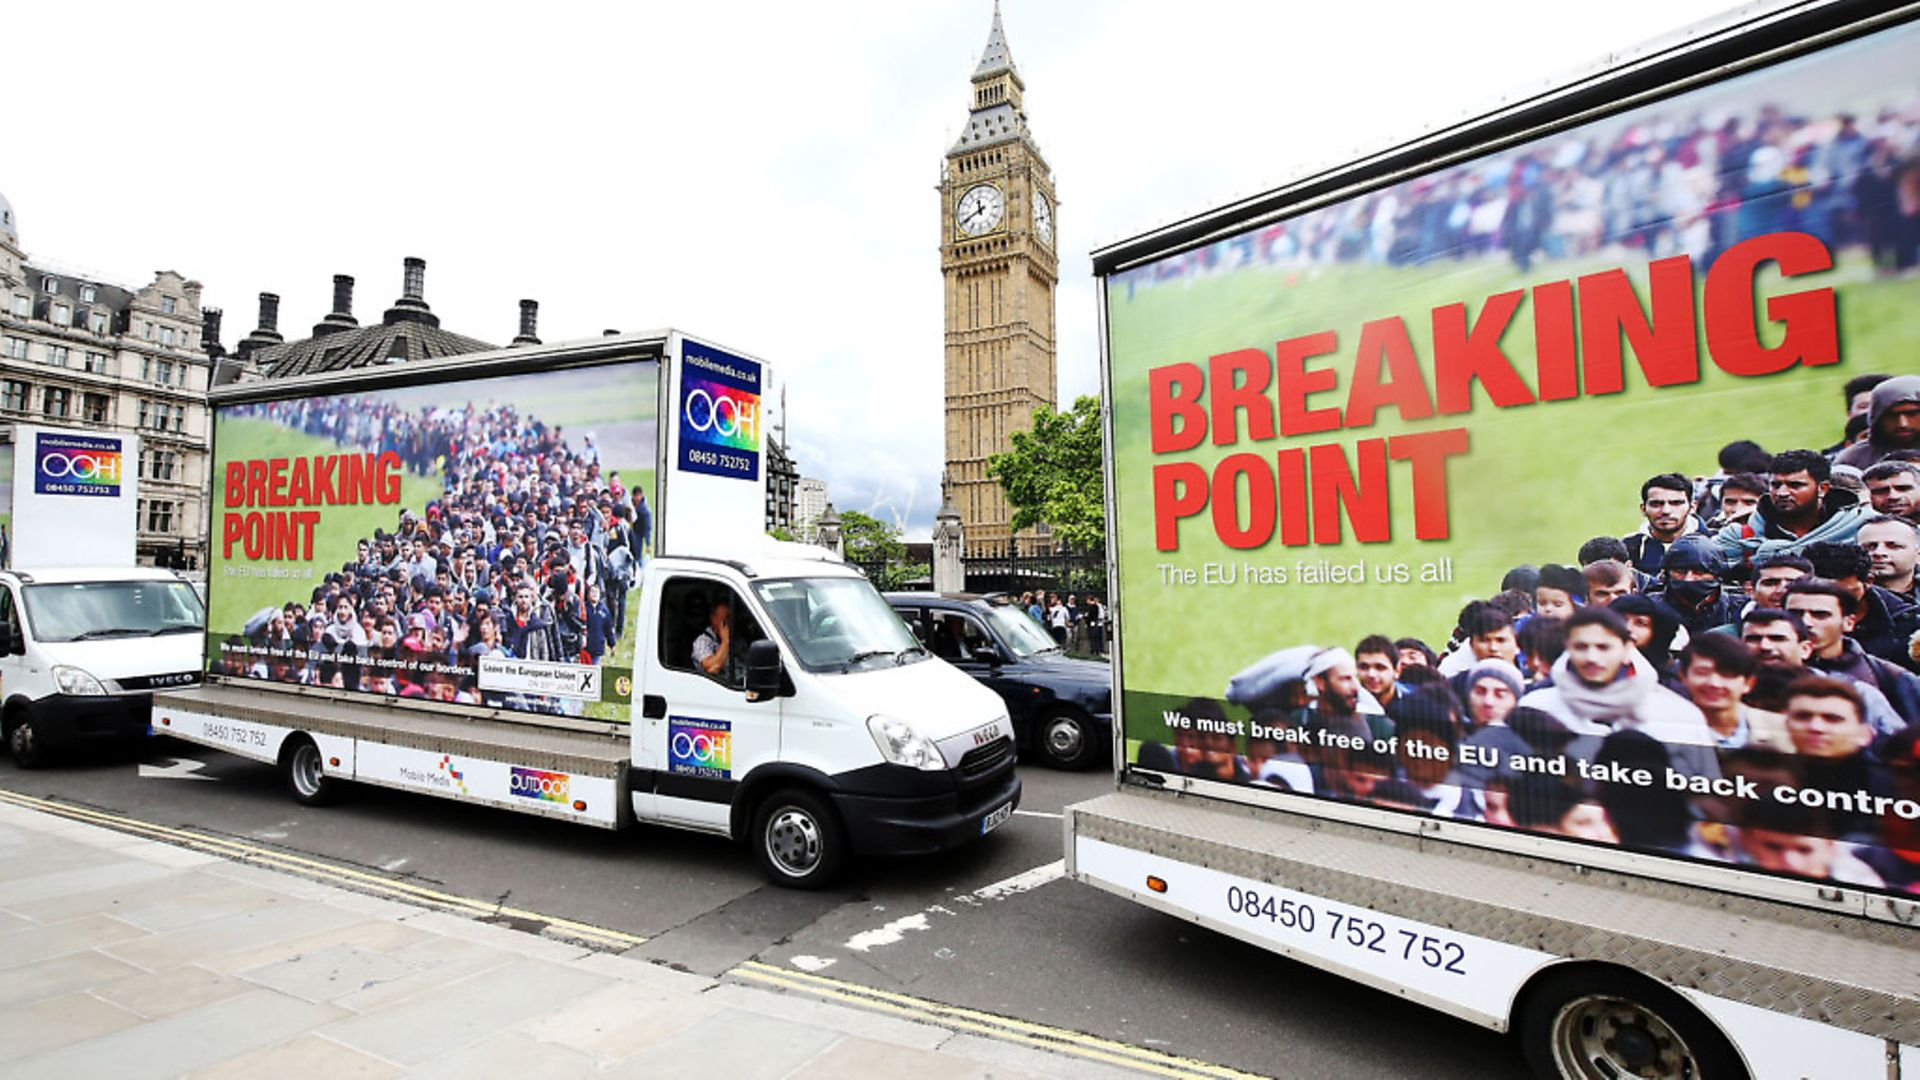 Vans showing the new Ukip EU referendum poster drive past Big Ben in London, for the launch of the poster campaign with Ukip leader Nigel Farage. - Credit: PA Archive/PA Images